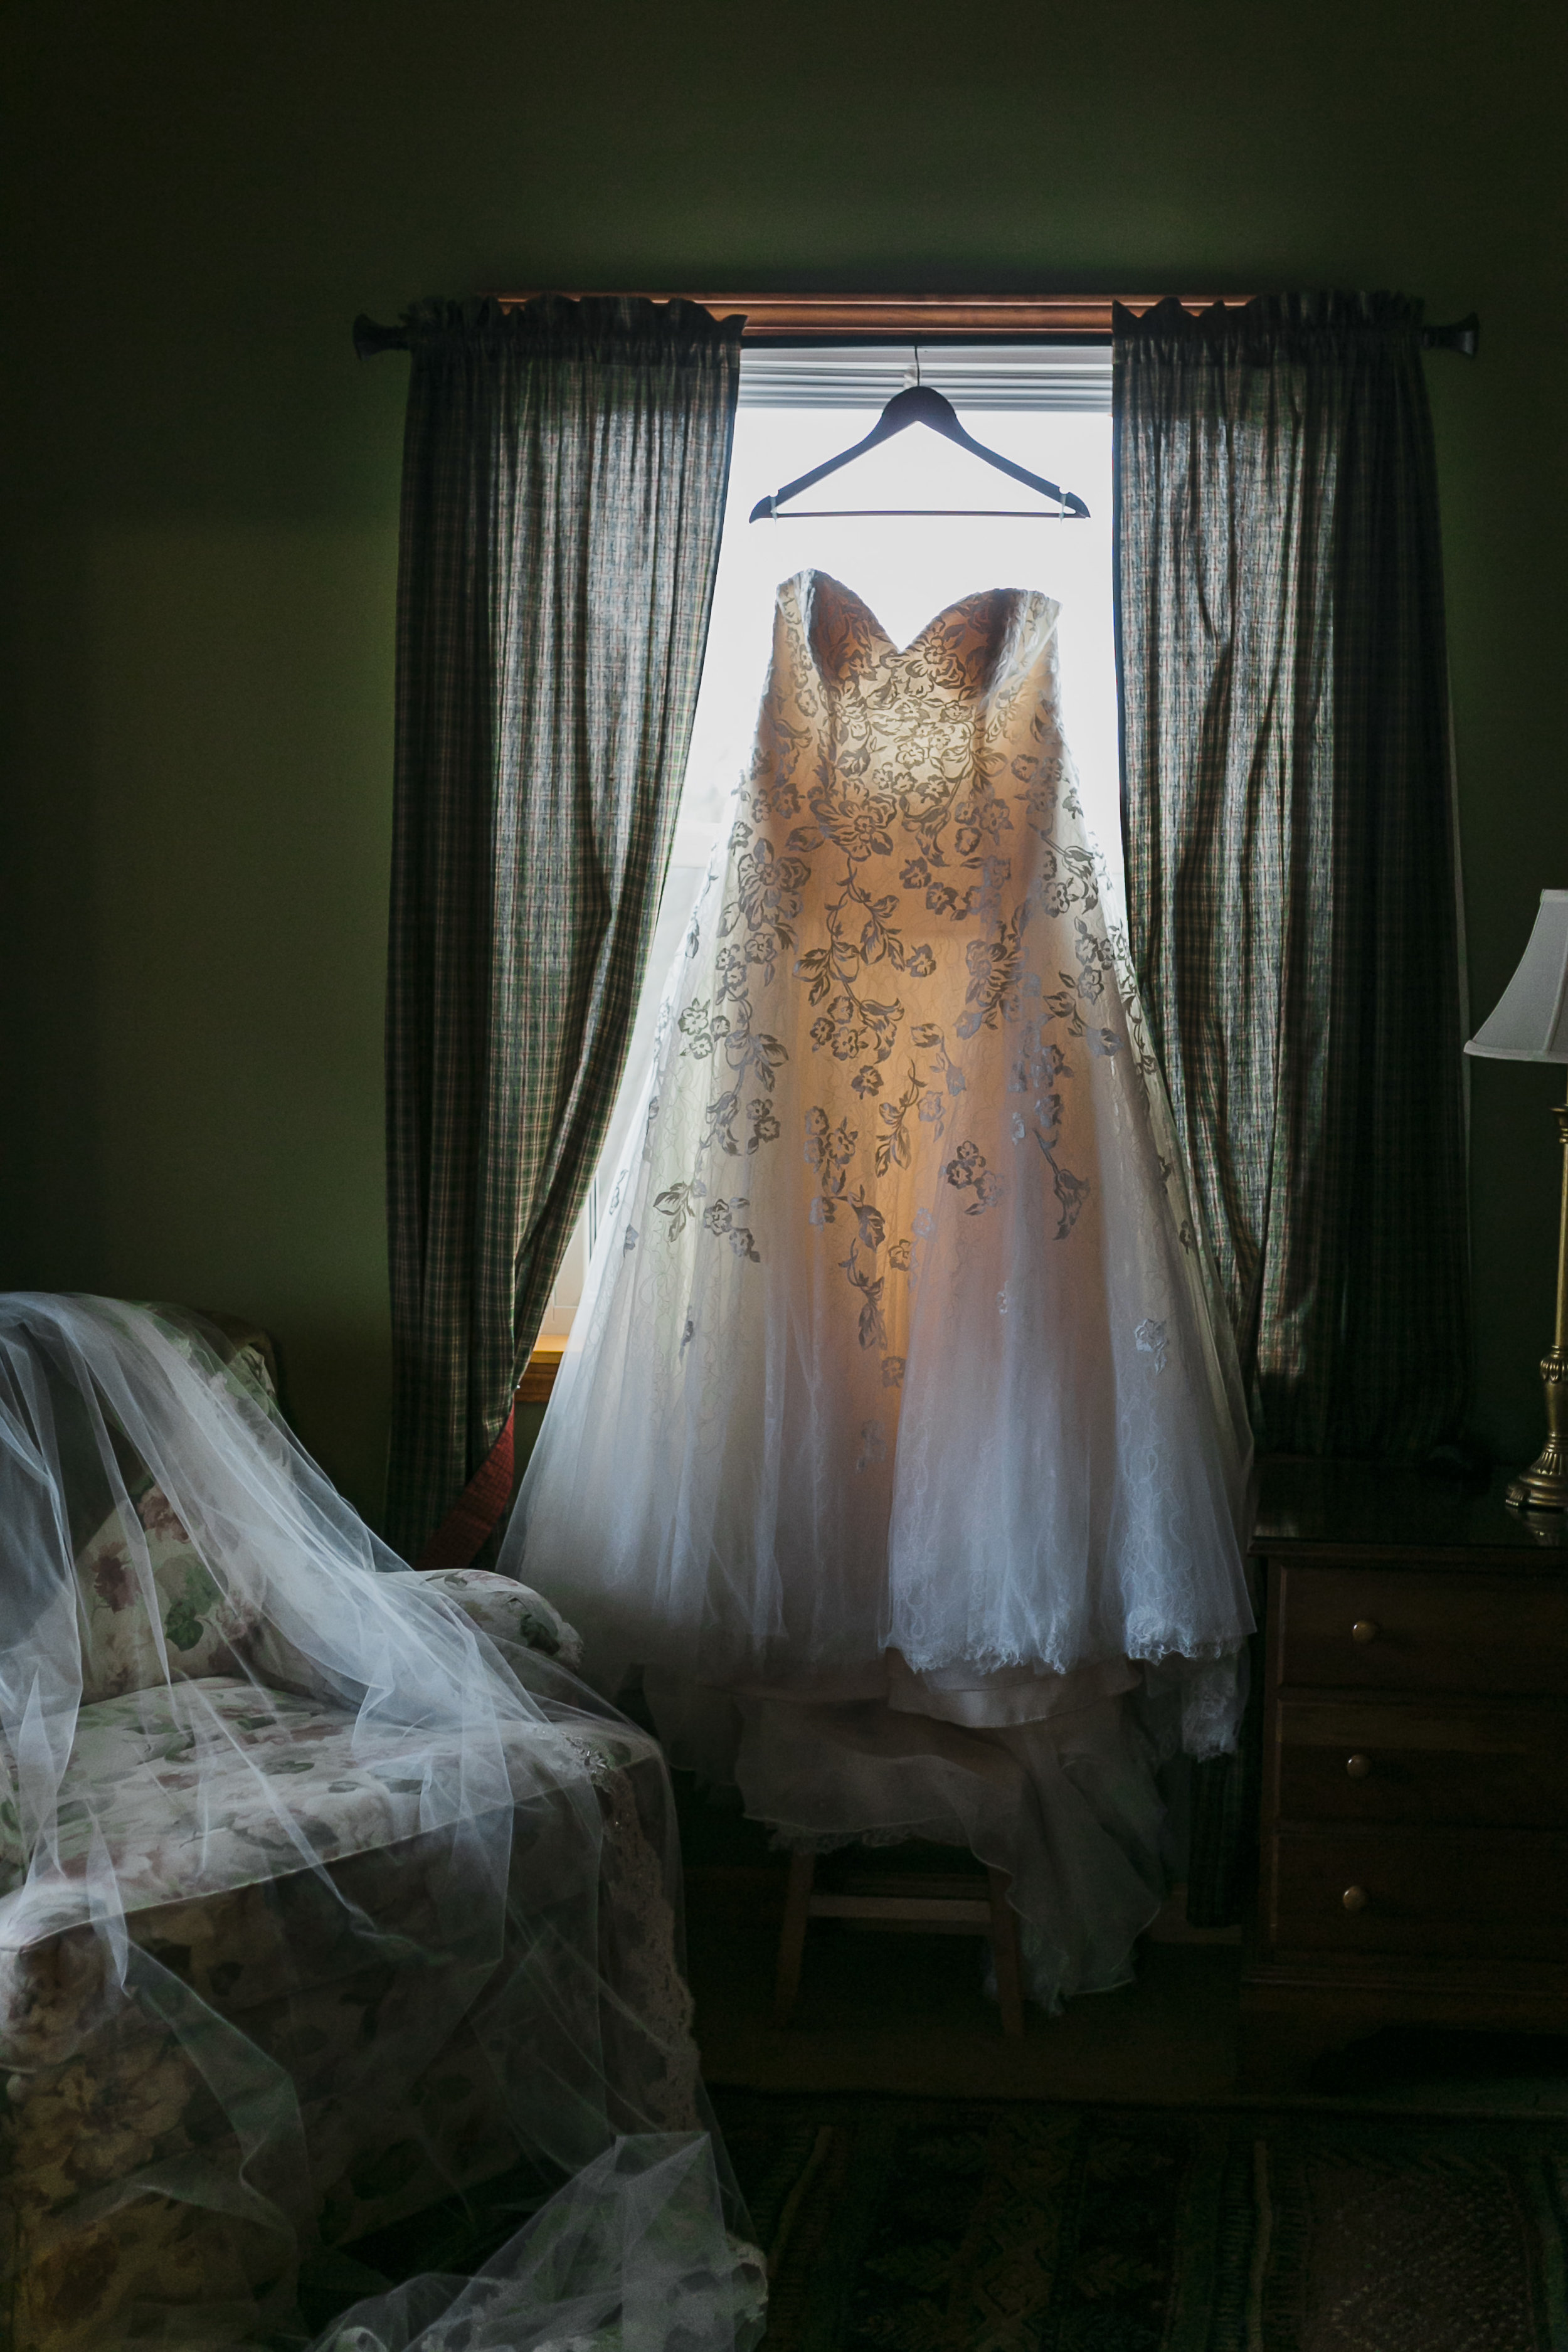 dress hanging in window peach colored